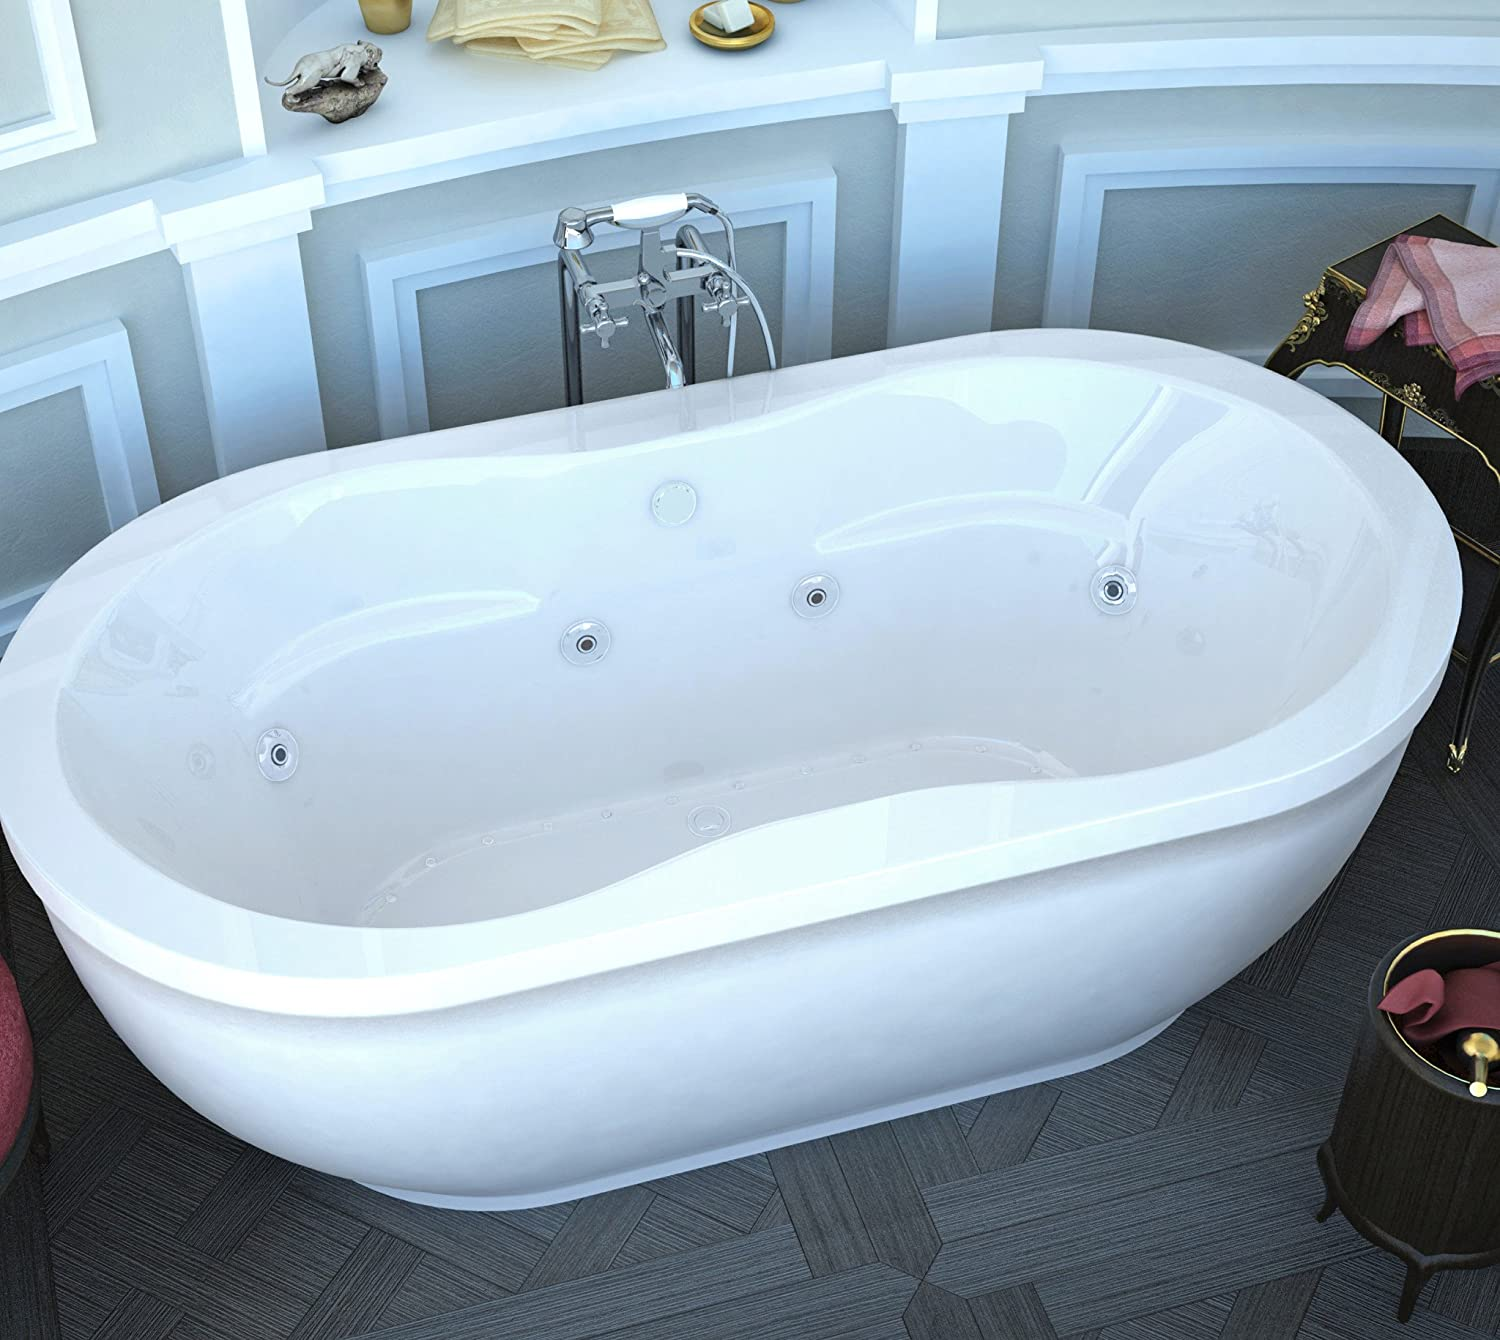 Spa World Venzi Vz3471ad Velia Oval Air & Whirlpool Bathtub, 34x71 ...